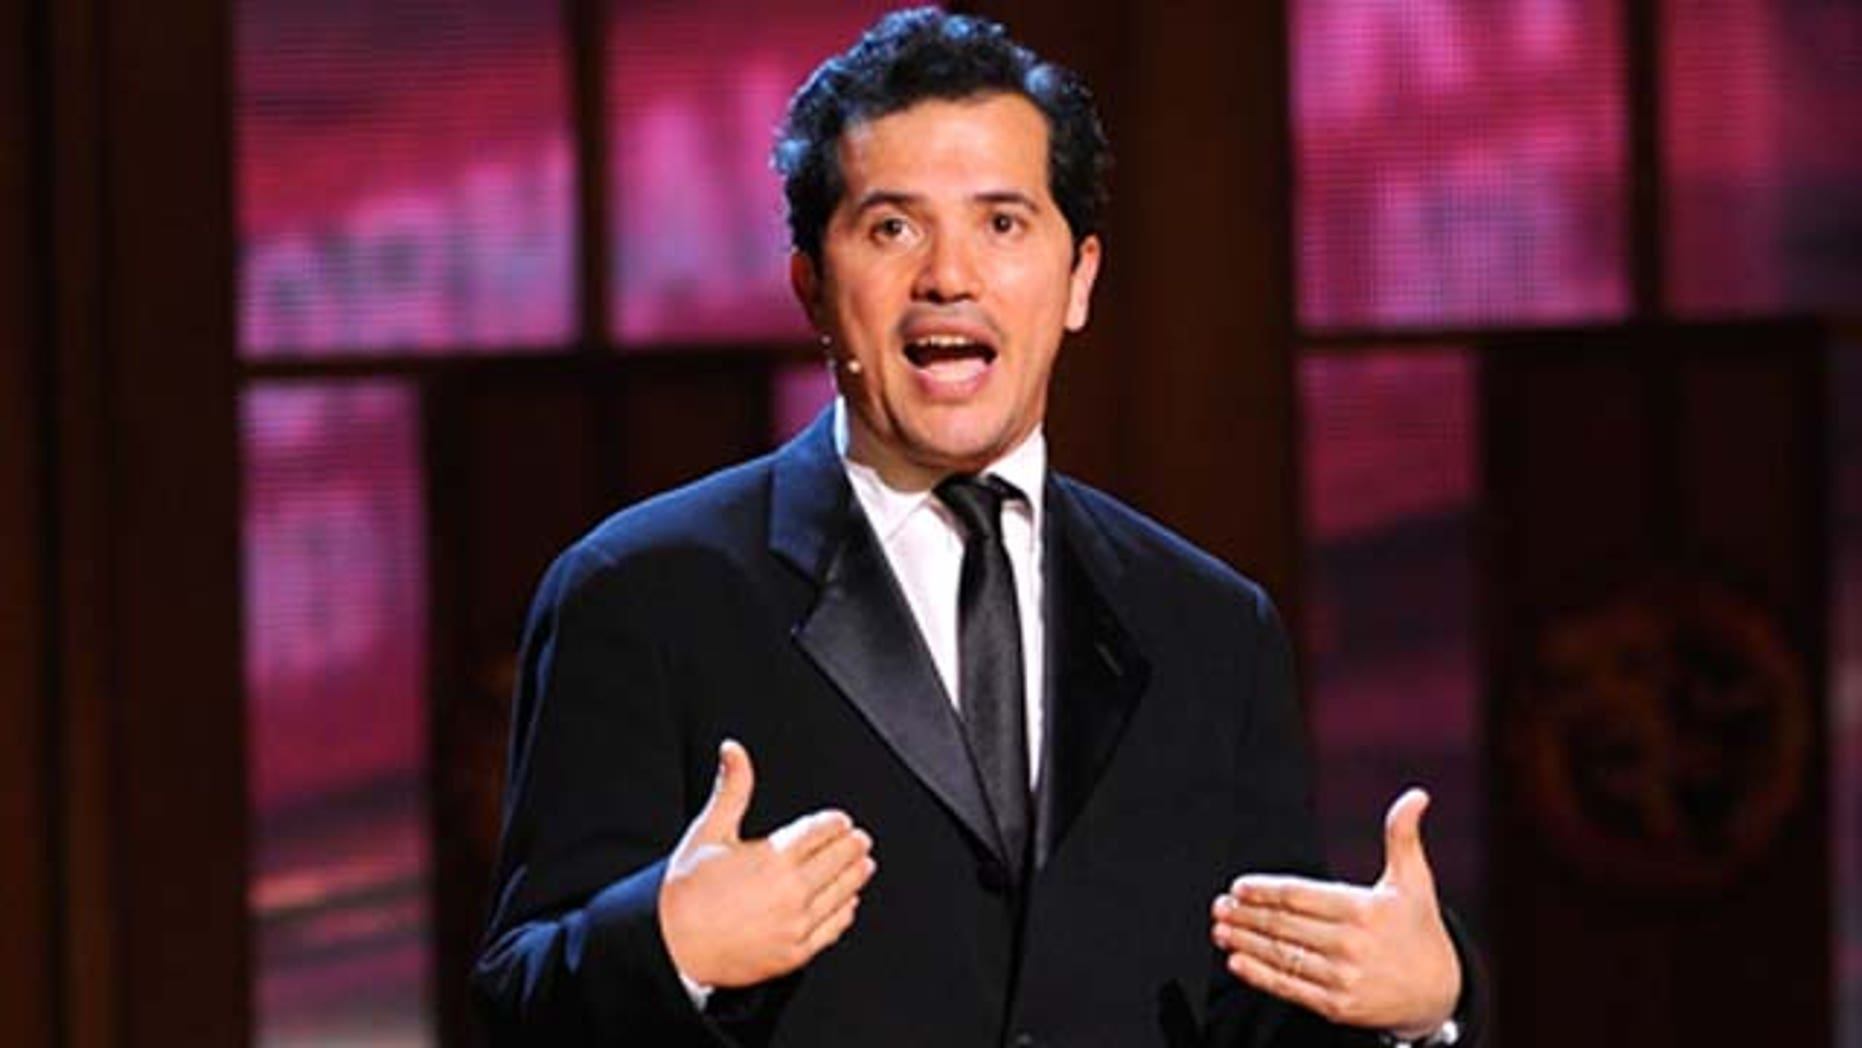 June 12, 2011: John Leguizamo speaks on stage during the 65th Annual Tony Awards at the Beacon Theatre in New York City.